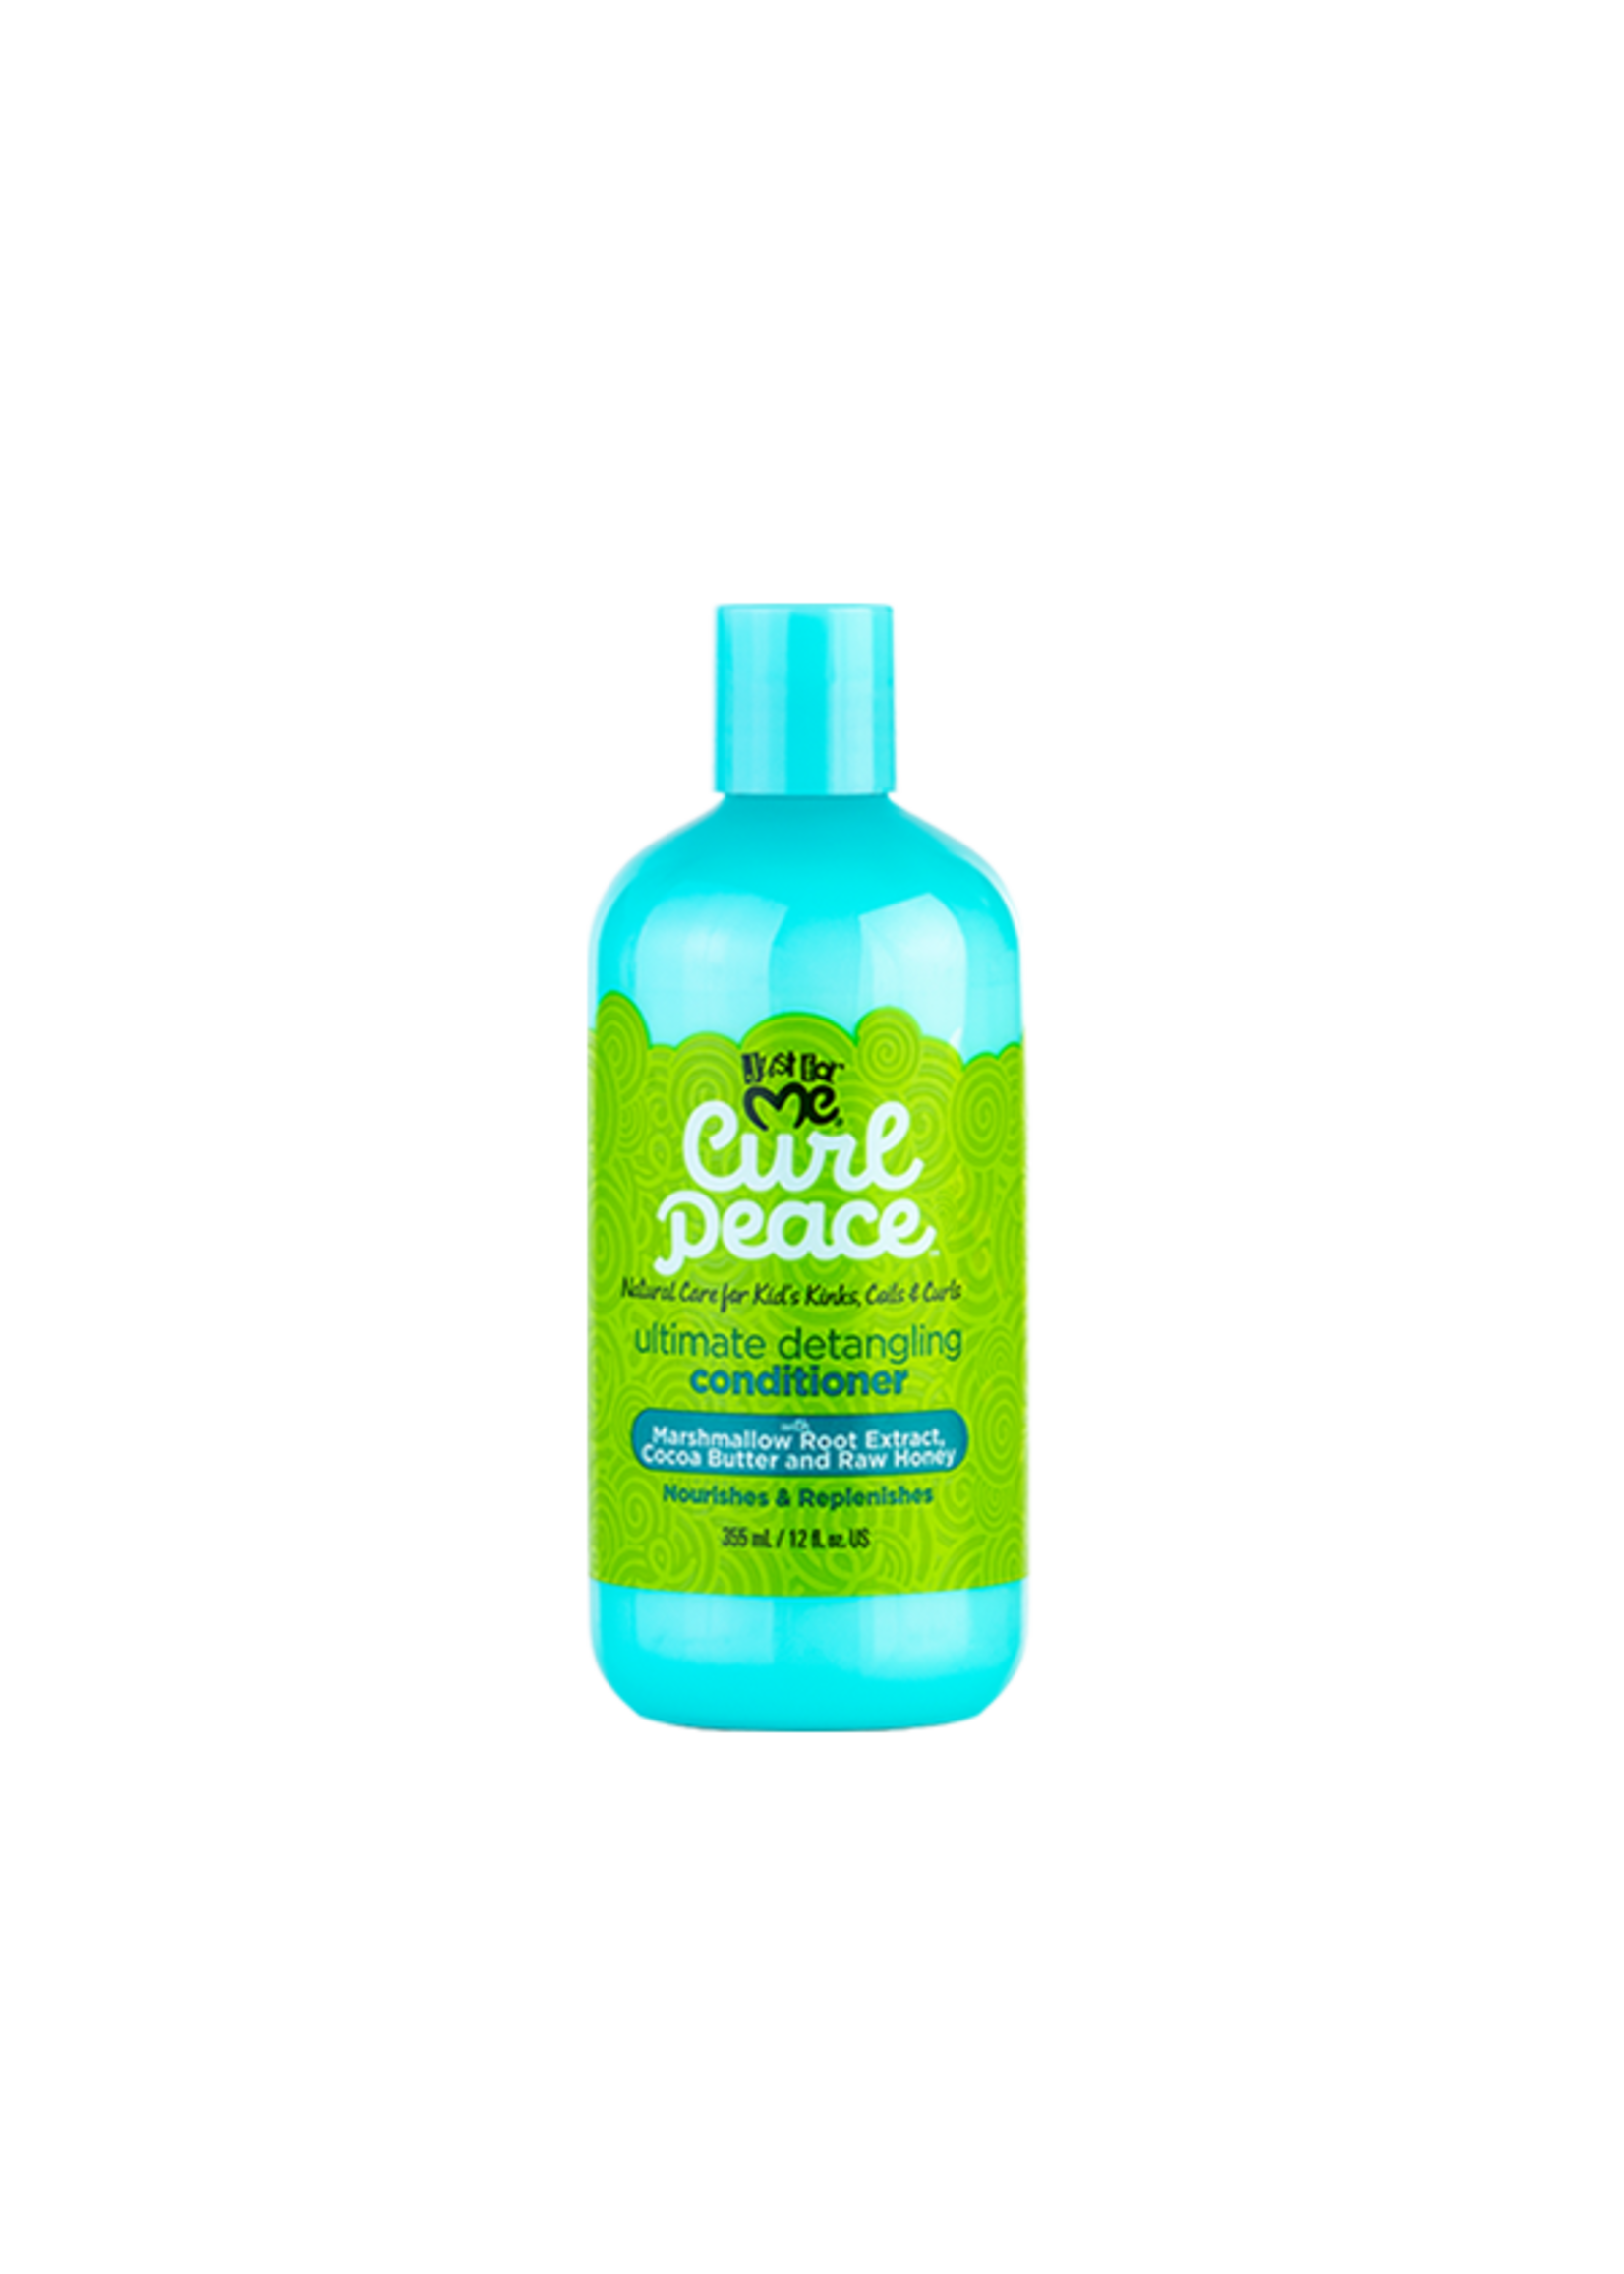 Just For Me Curl Peace Detangling Conditioner